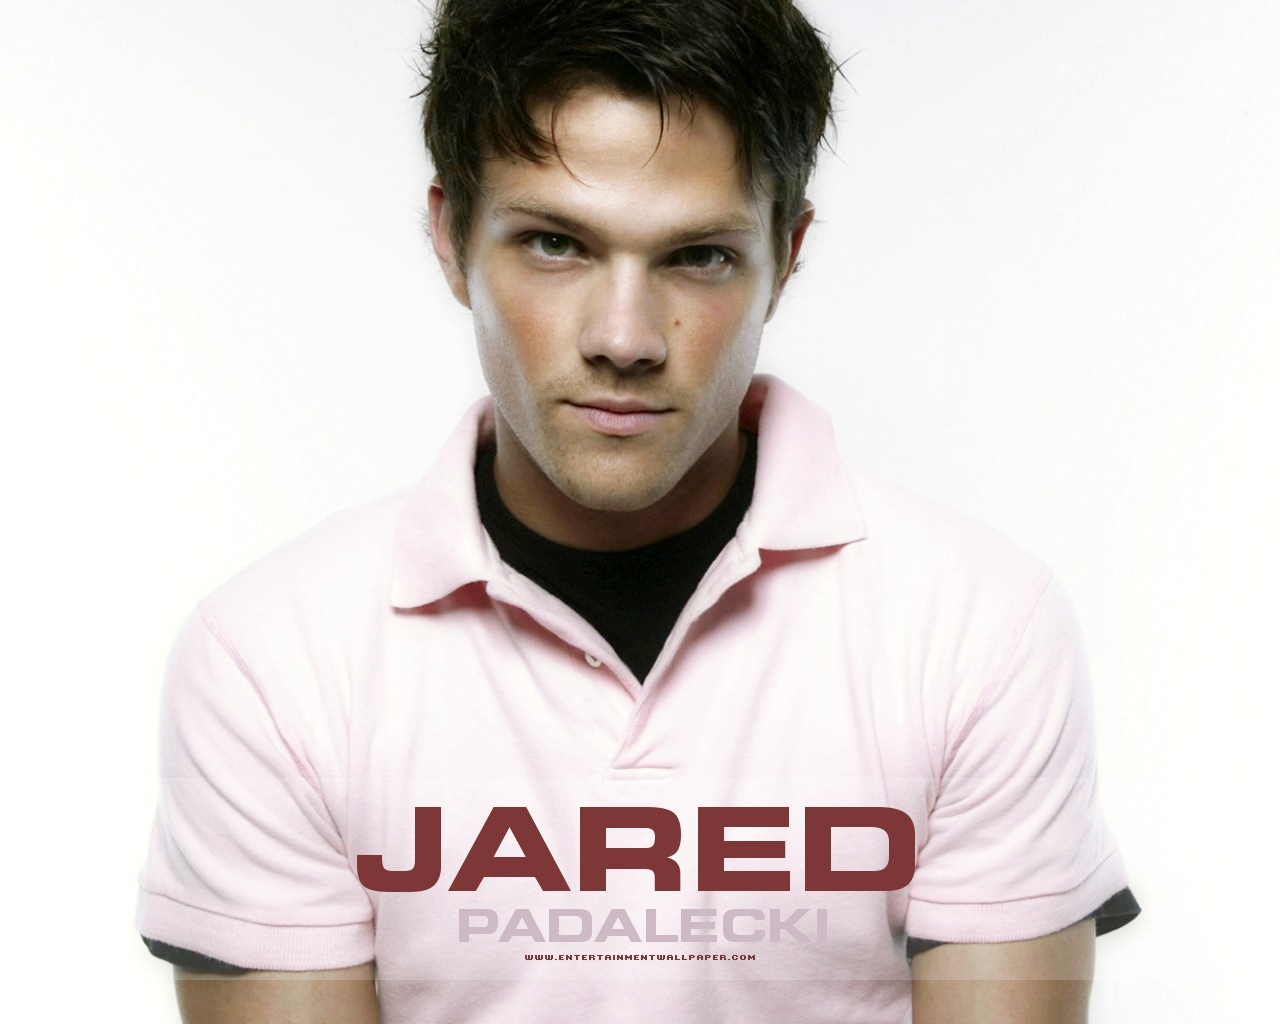 Jared Padalecki - Jared Padalecki Wallpaper (645139) - Fanpop